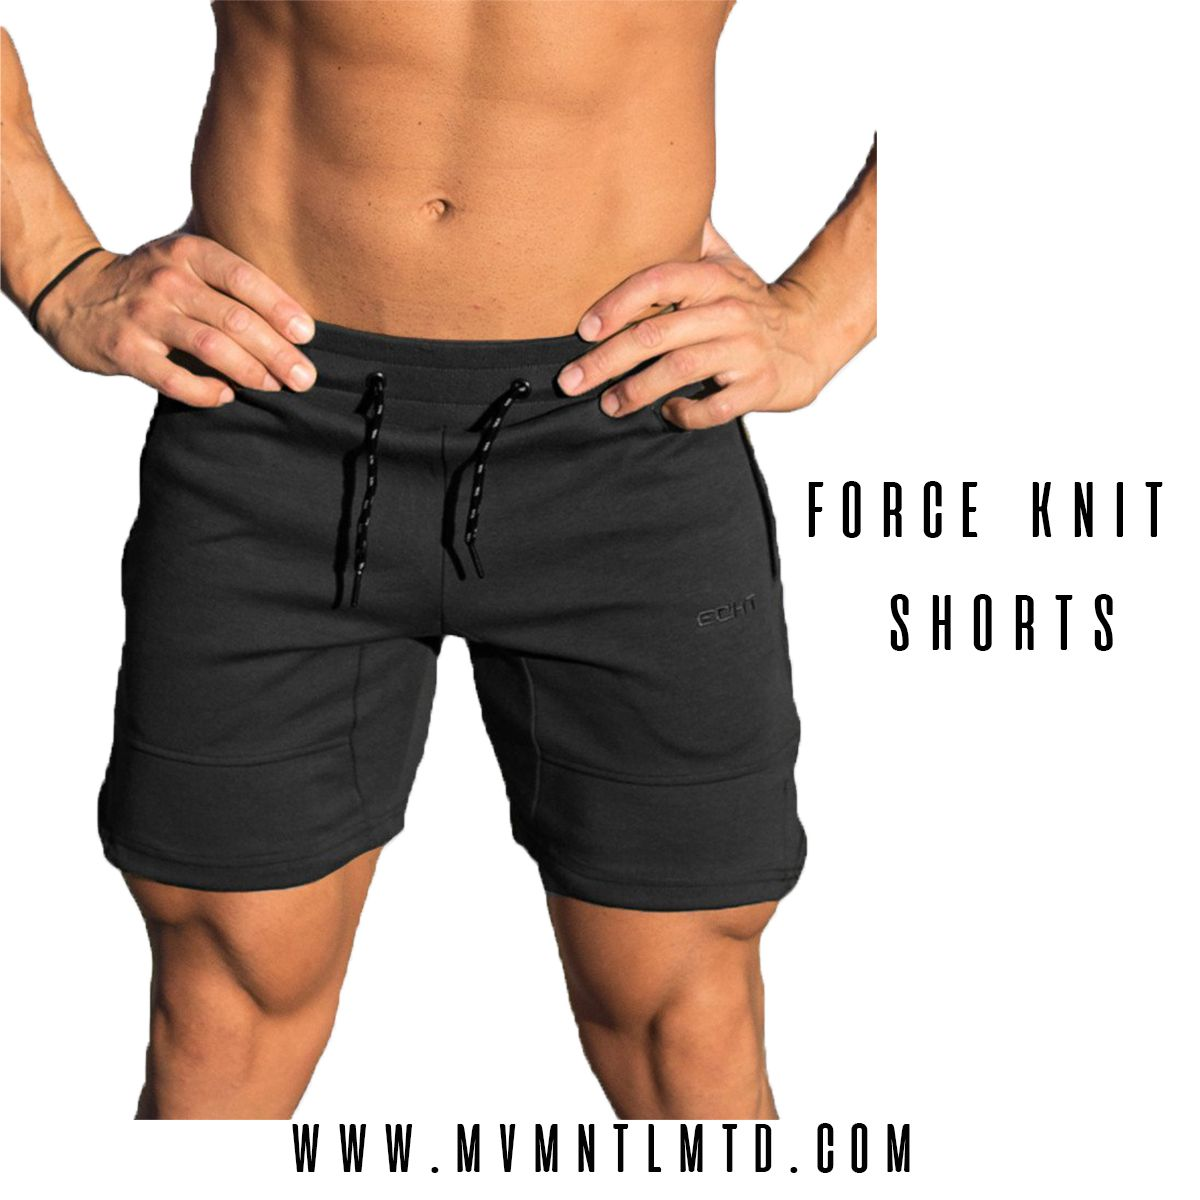 f47a285075 Echt force knit shorts are Ultra-lightweight, moisture transporting and  minimalist in design. The perfect shorts for the active lifestyle.